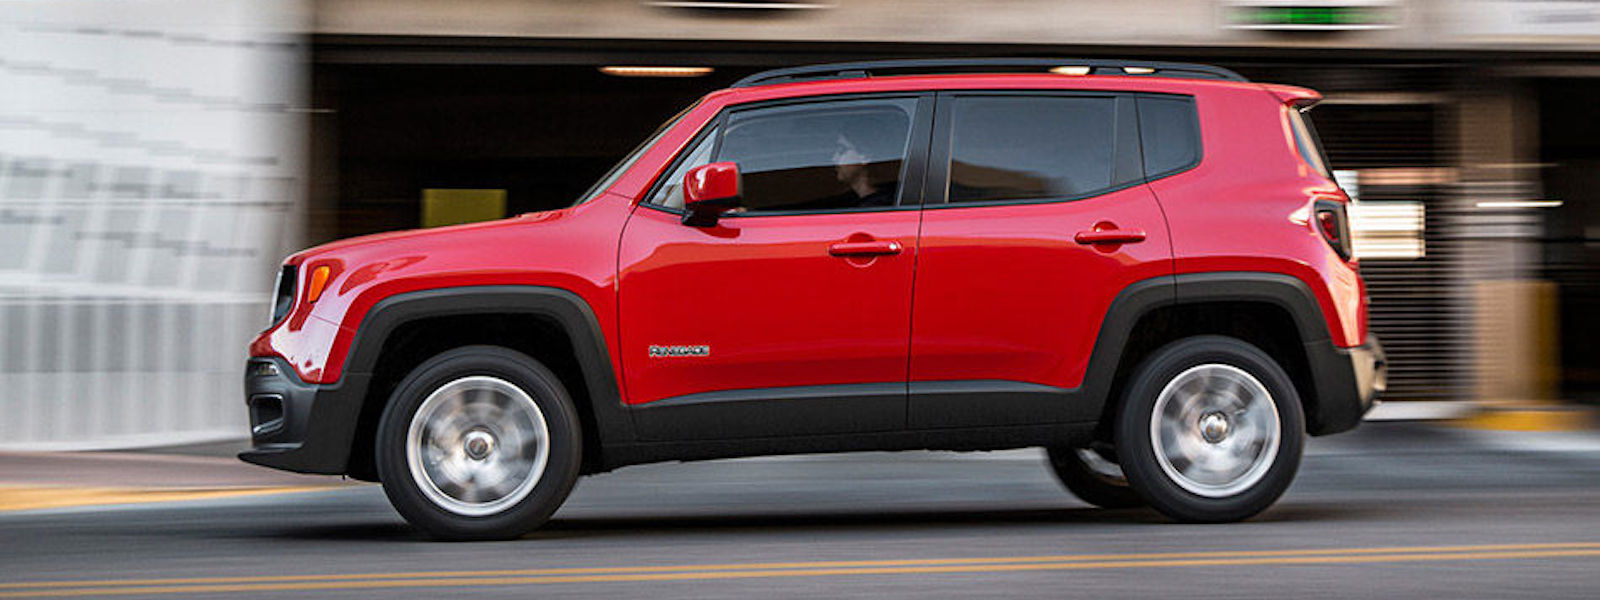 Performance in a 2016 Jeep Renegade